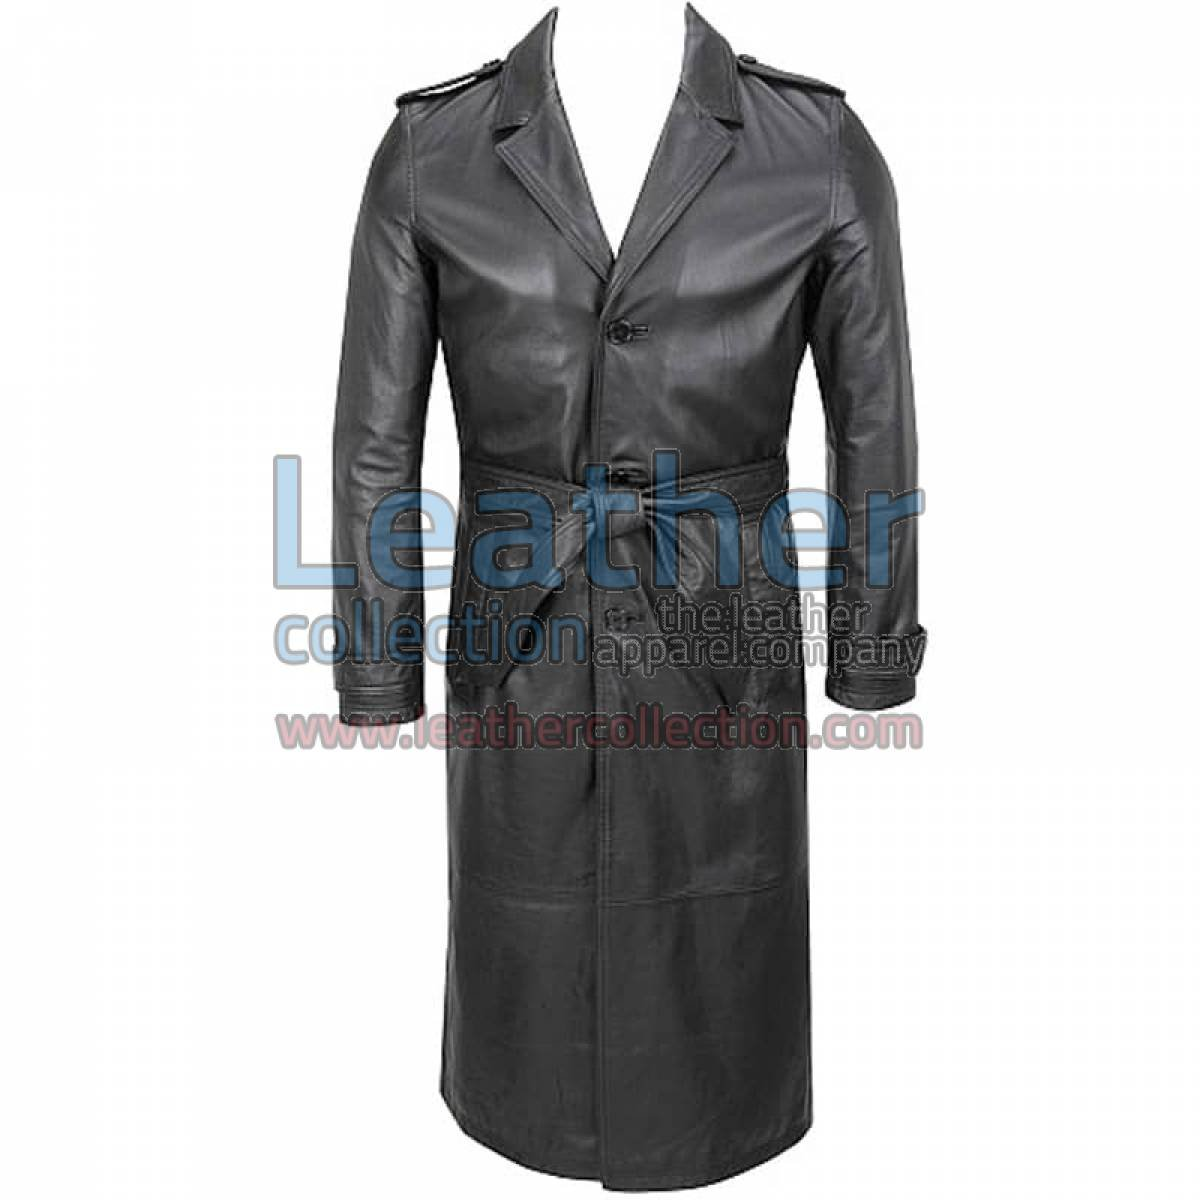 Belted Classic Leather Long Trench Coat